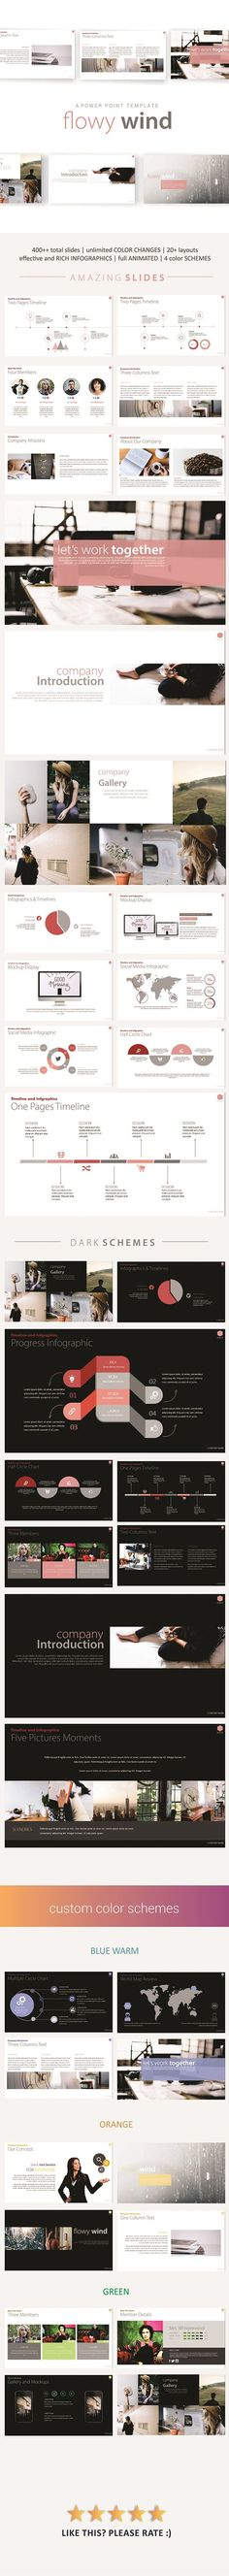 Buy Flowy Wind PowerPoint Template by PresentaKit on GraphicRiver. A Power Point Presentation Template Clean, cheerful looks, elegant, futuristic, and easy to use presentation templat. Web Design, Slide Design, Layout Design, Ppt Template Design, Booklet Design, Design Presentation, Presentation Templates, Business Presentation, Keynote Design